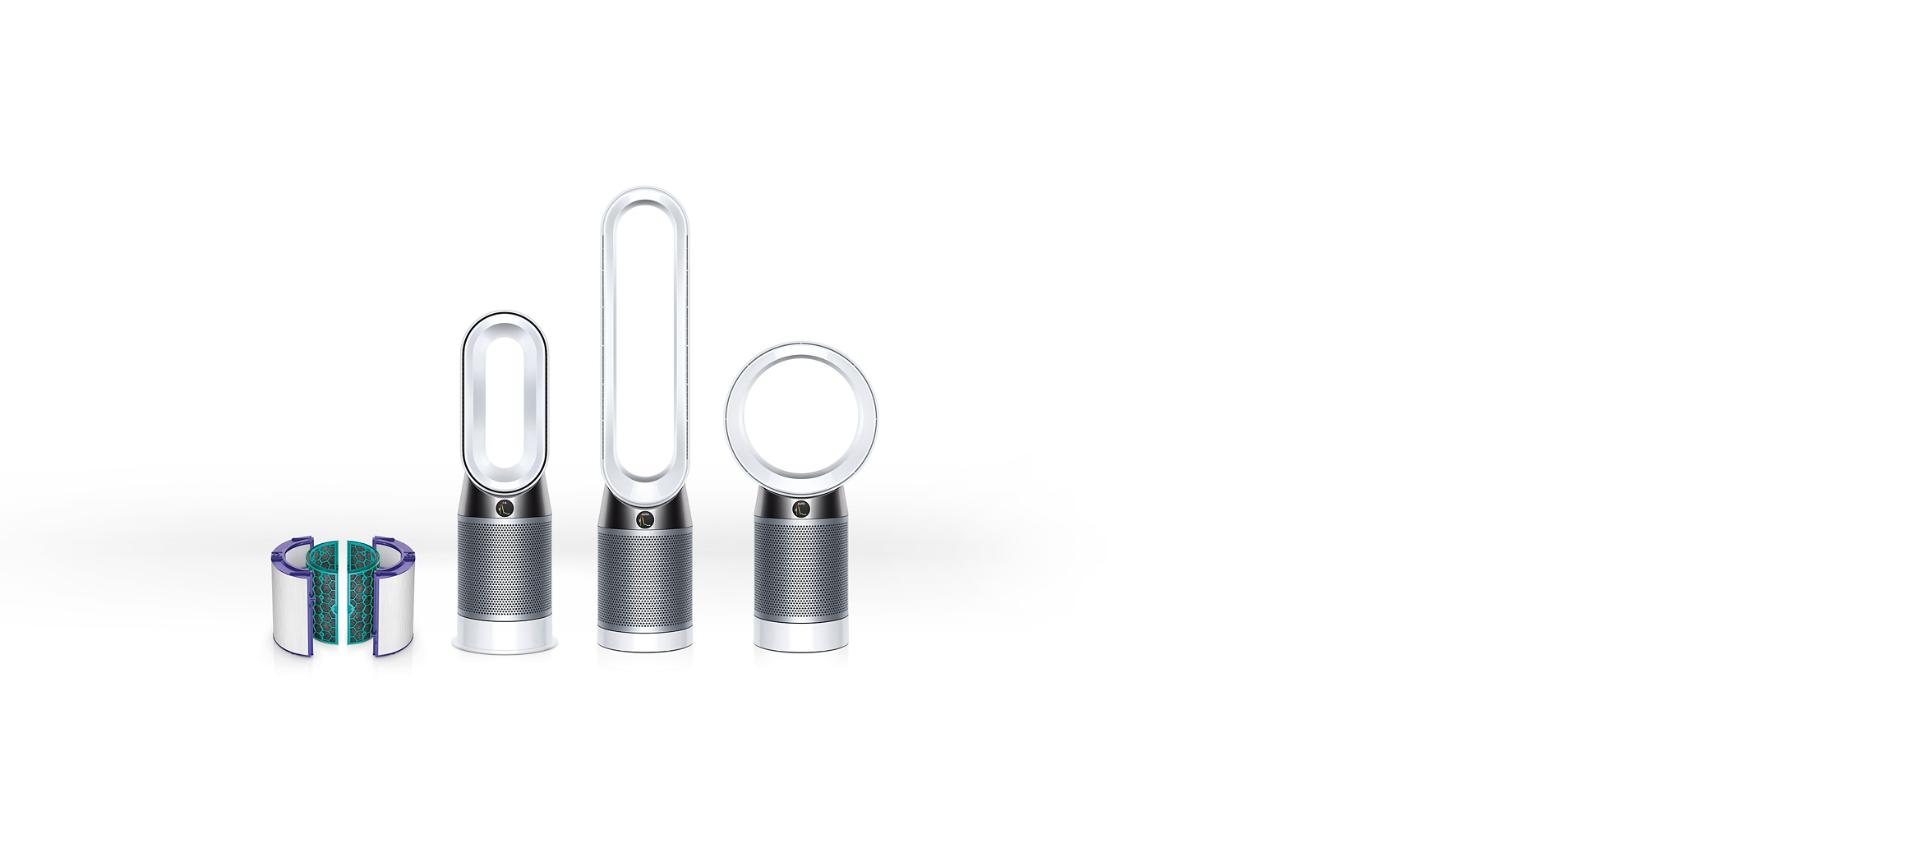 Dyson purifier range in a row including a filter